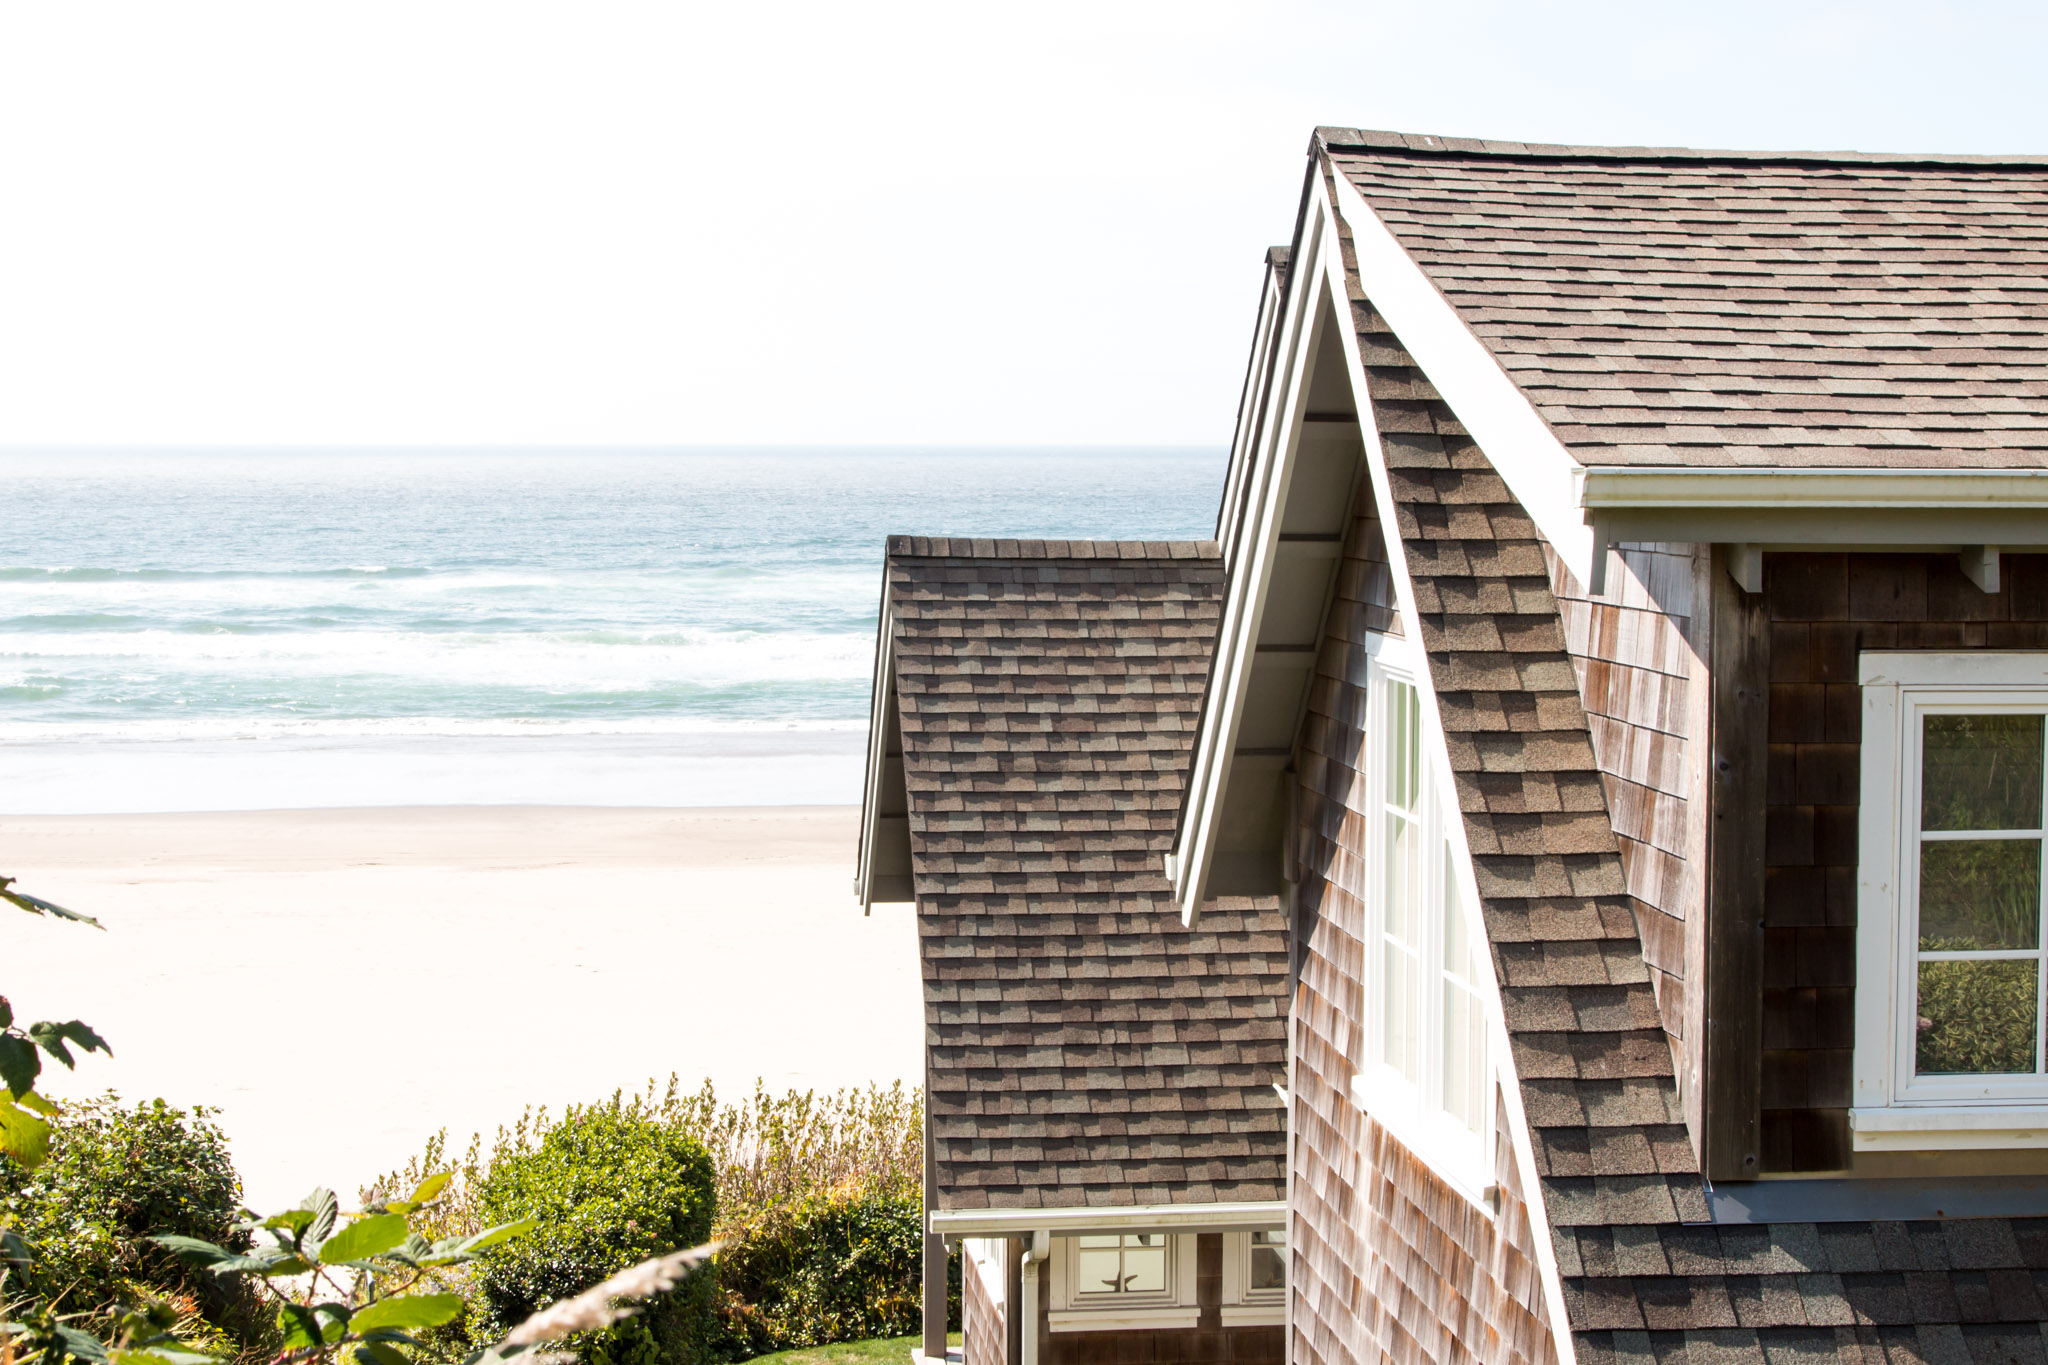 Oceanfront home in Cannon Beach, Oregon